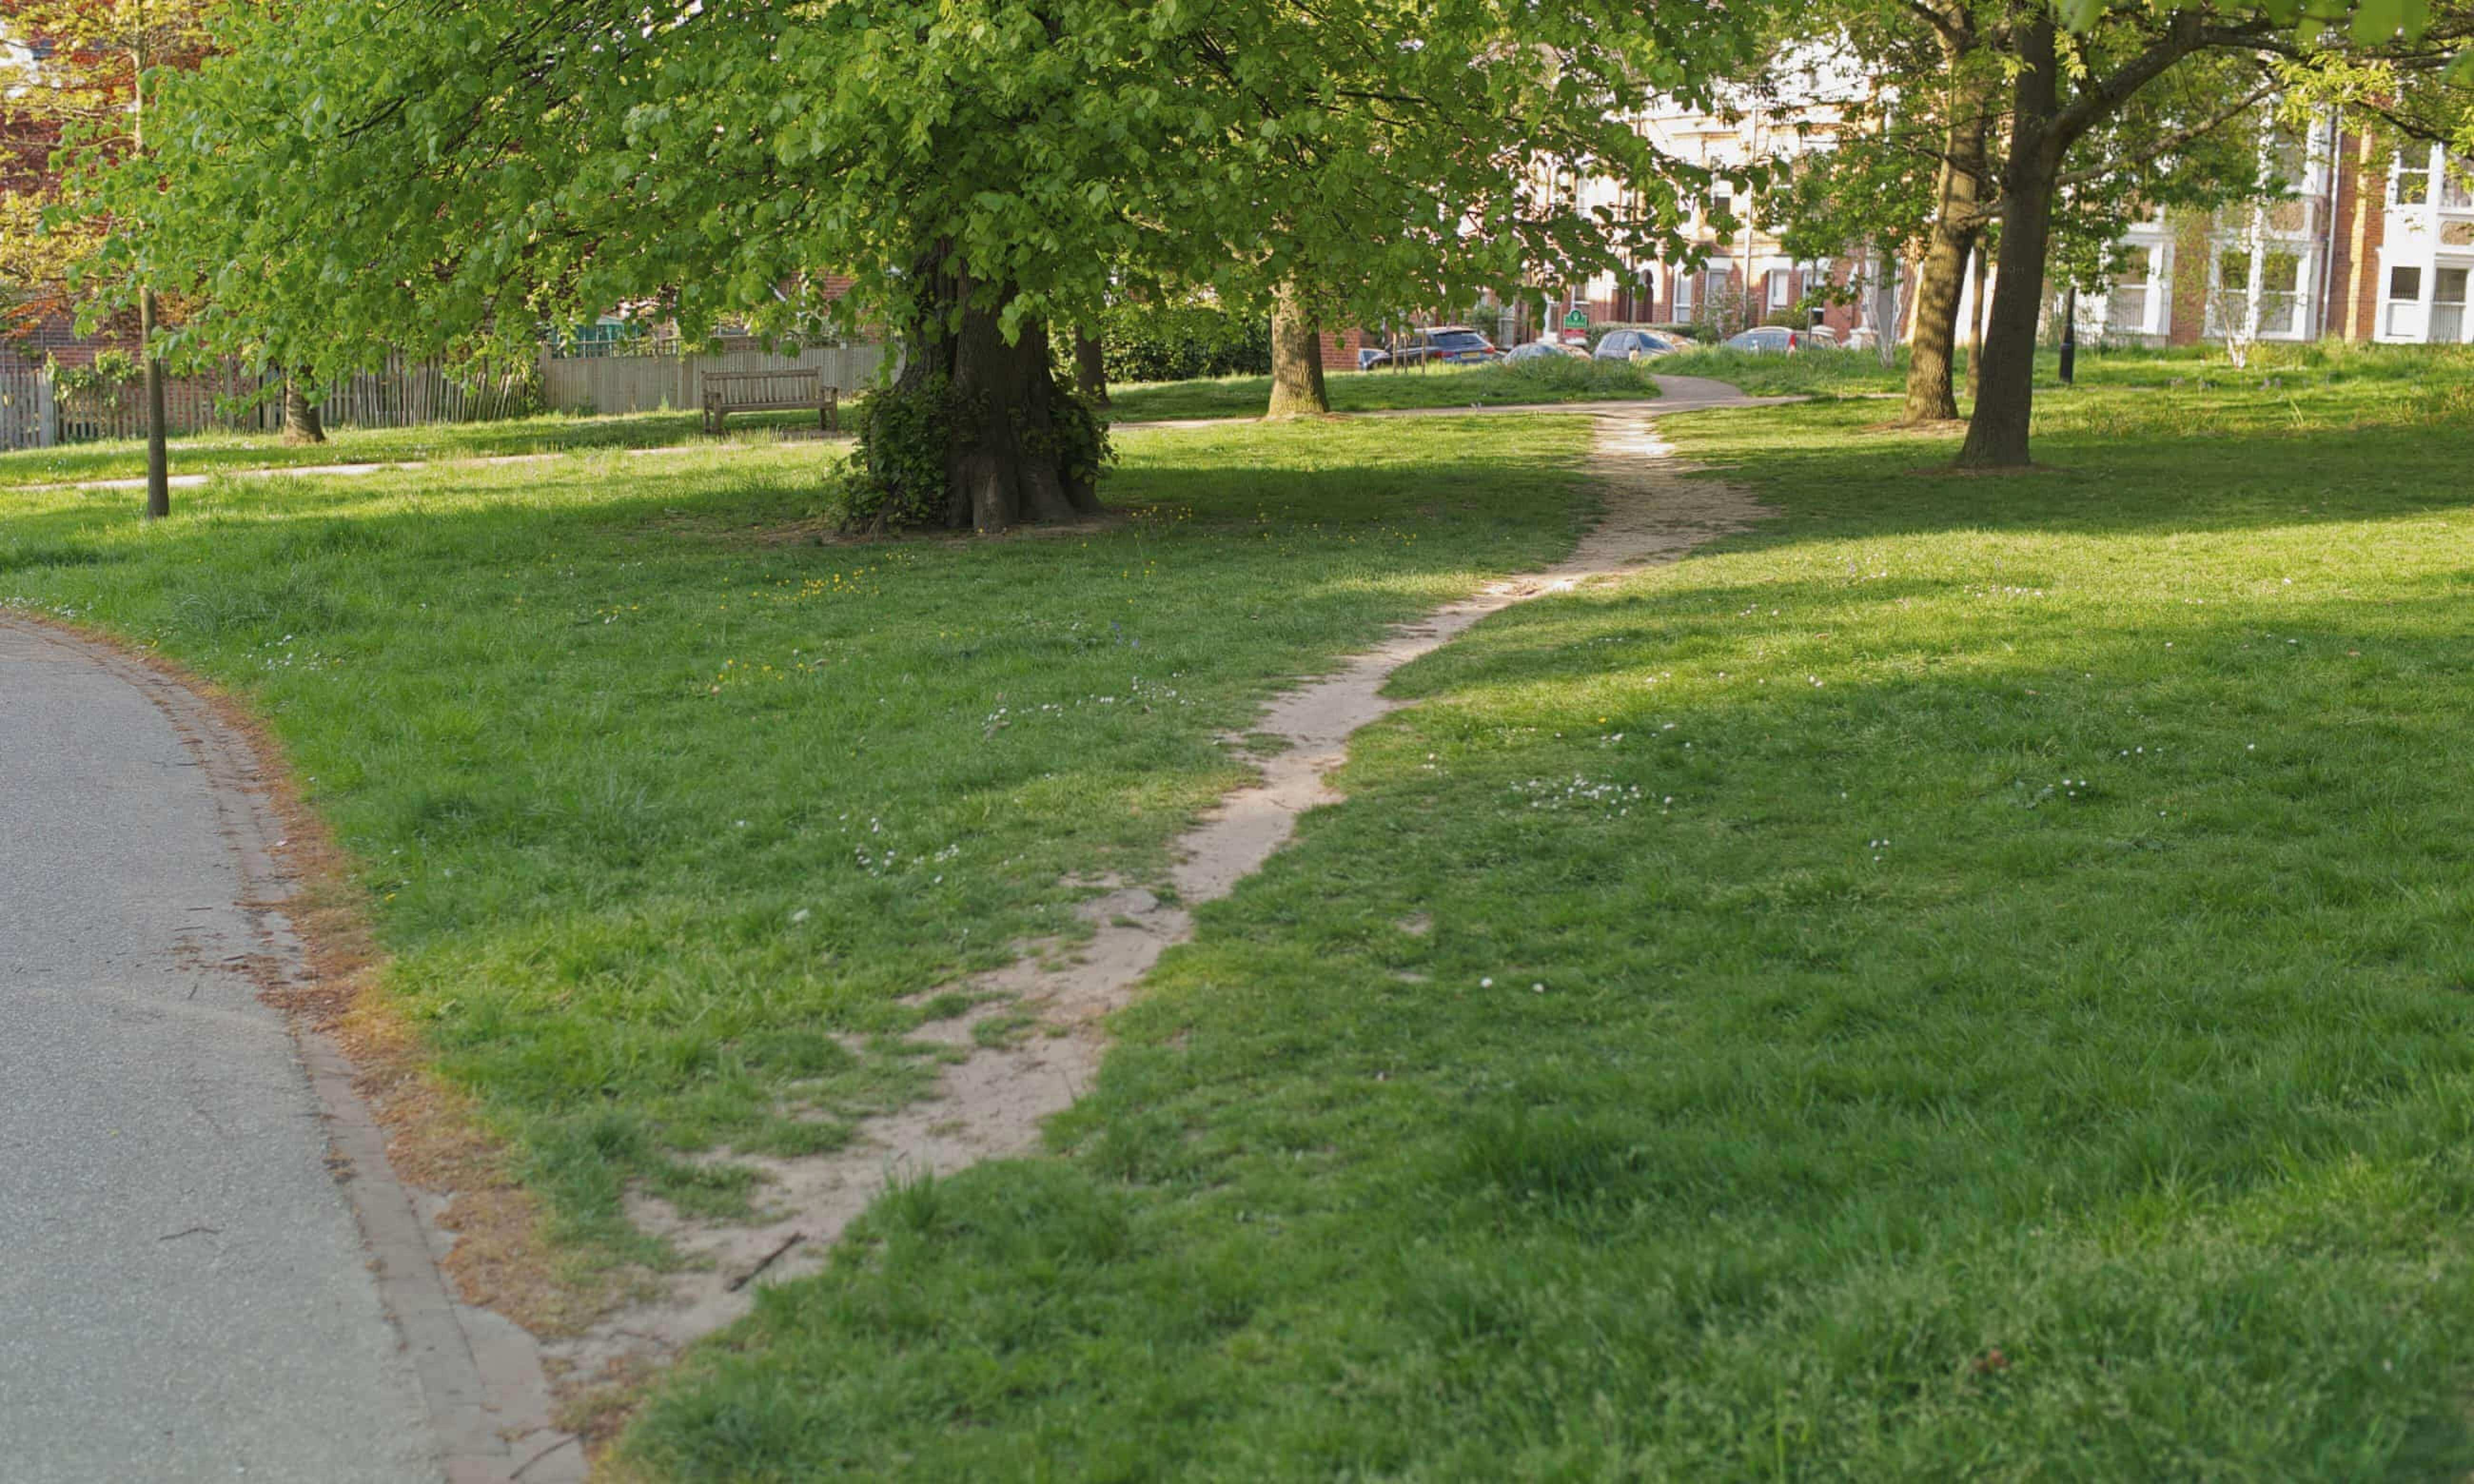 Photo of a green park